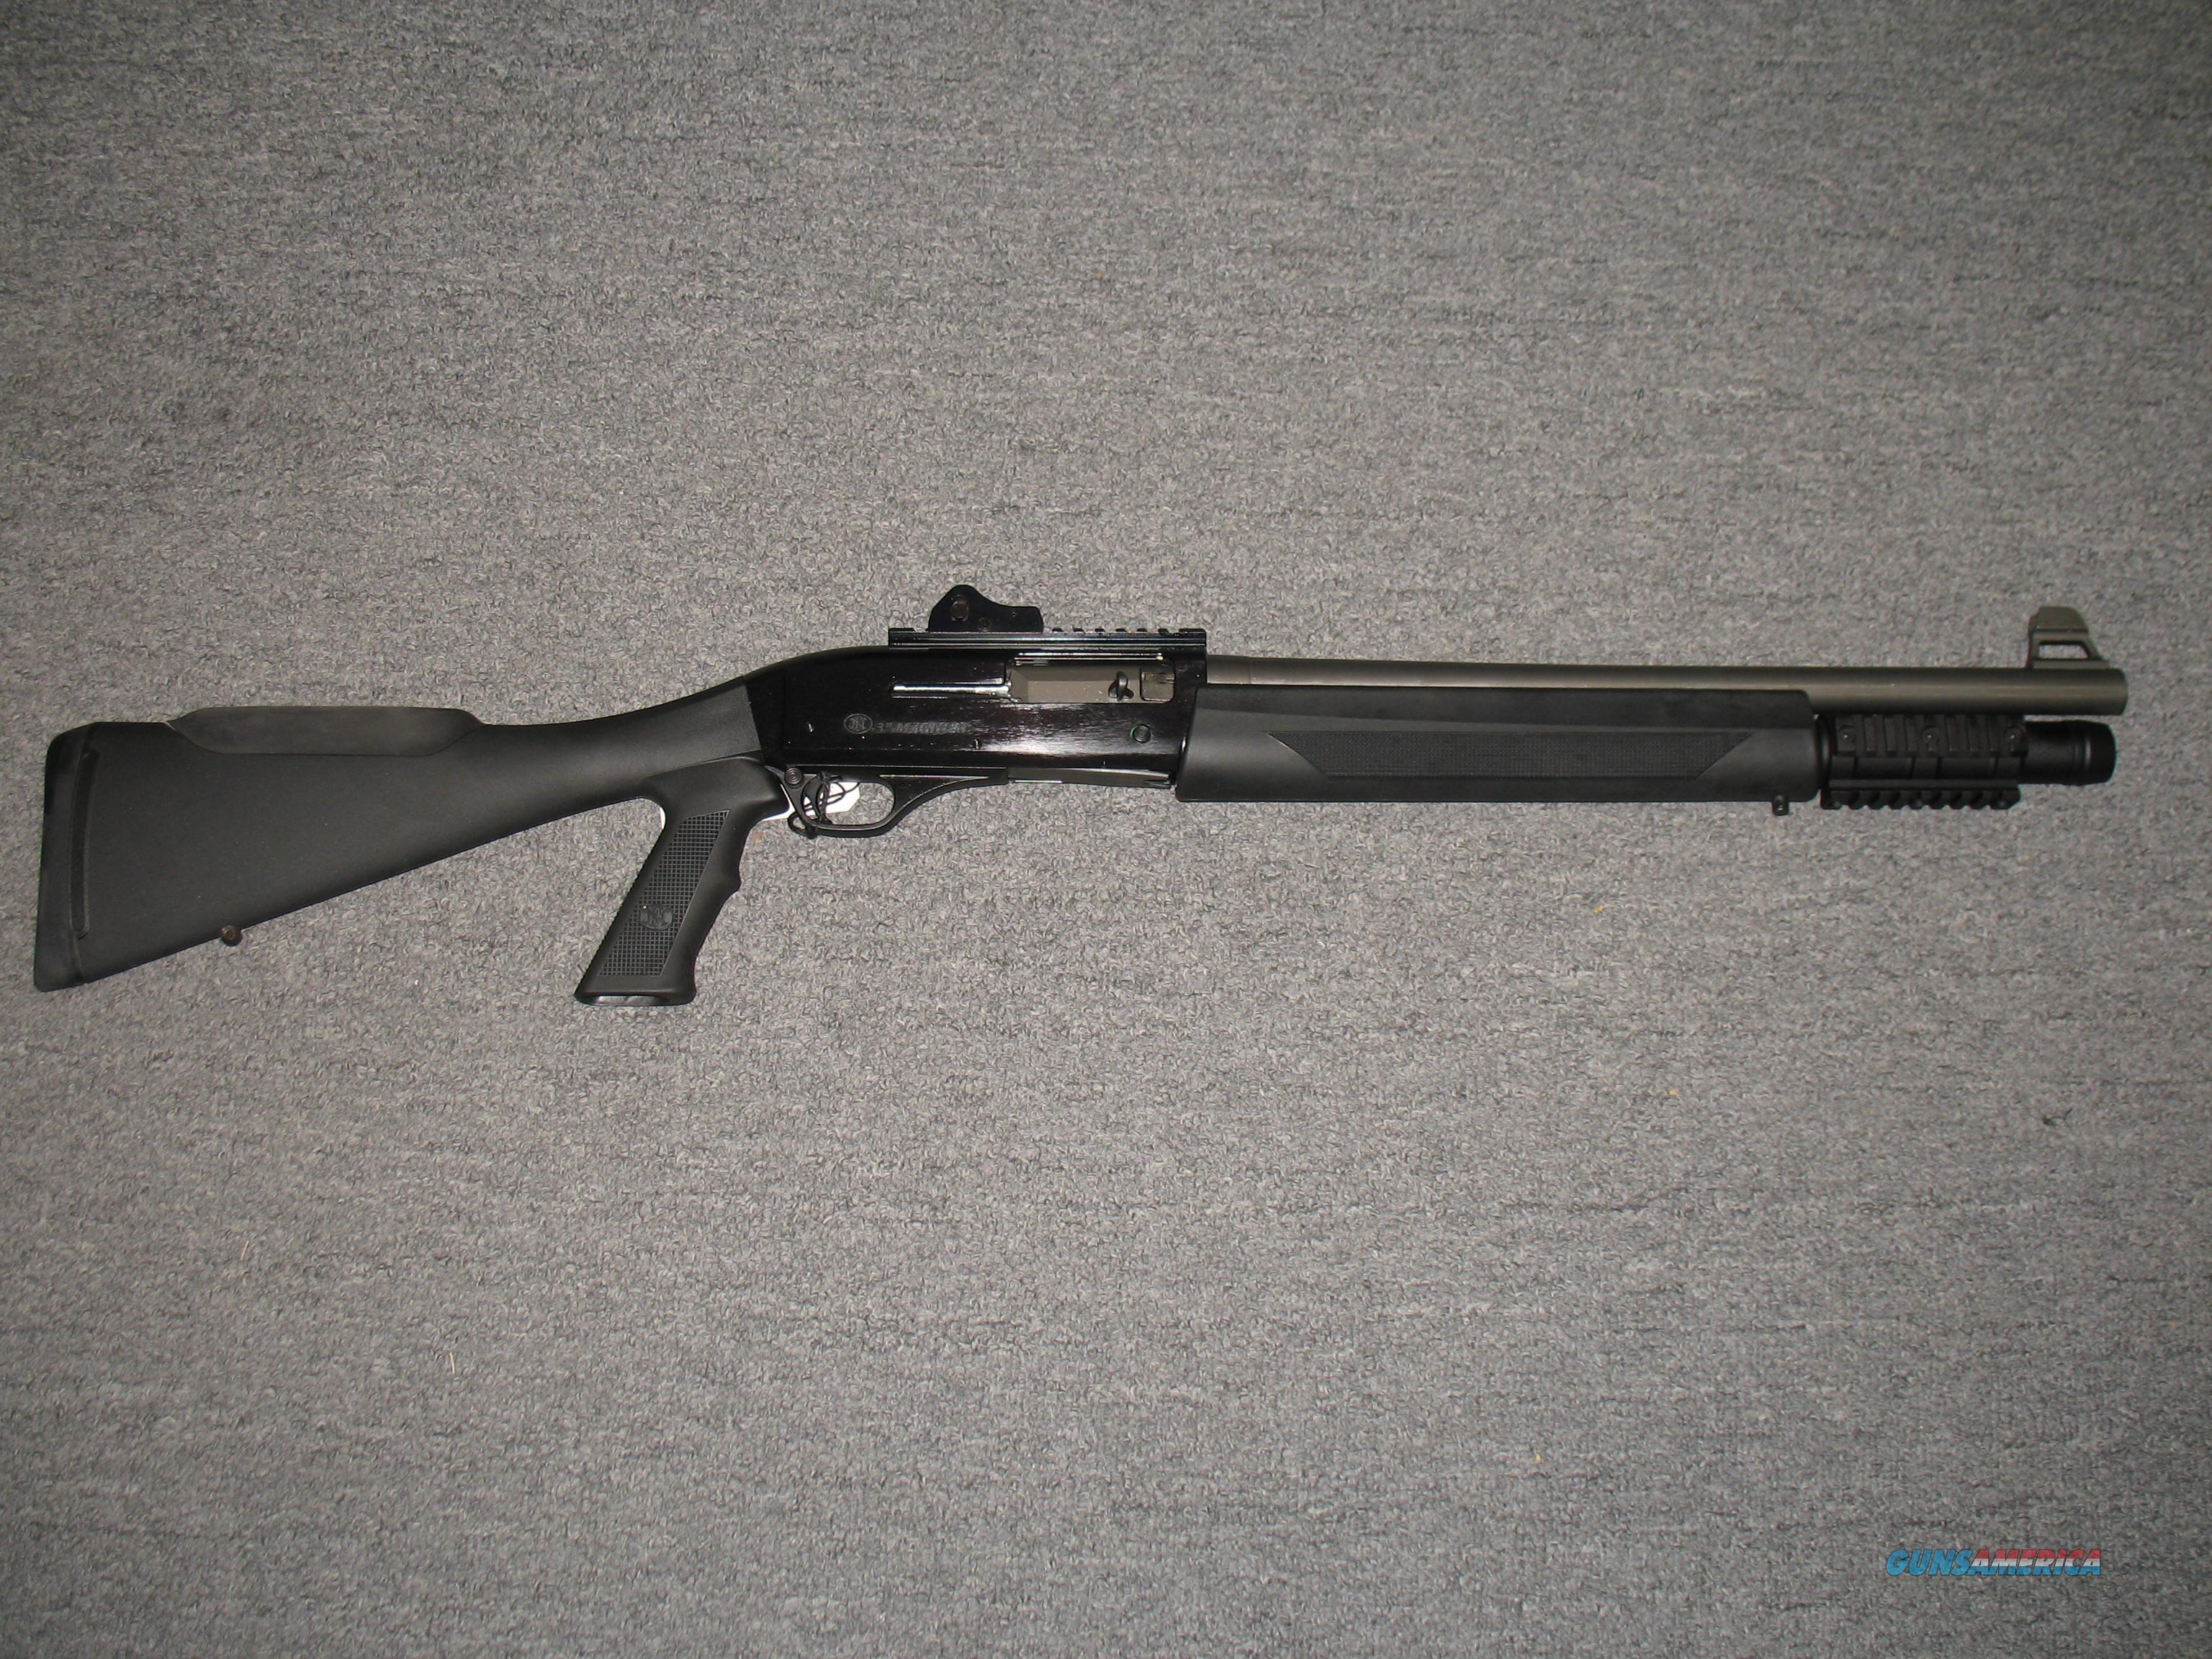 FNH SLP 12 gauge (Self Loading Police)  Guns > Shotguns > FNH - Fabrique Nationale (FN) Shotguns > Auto > FN SLP